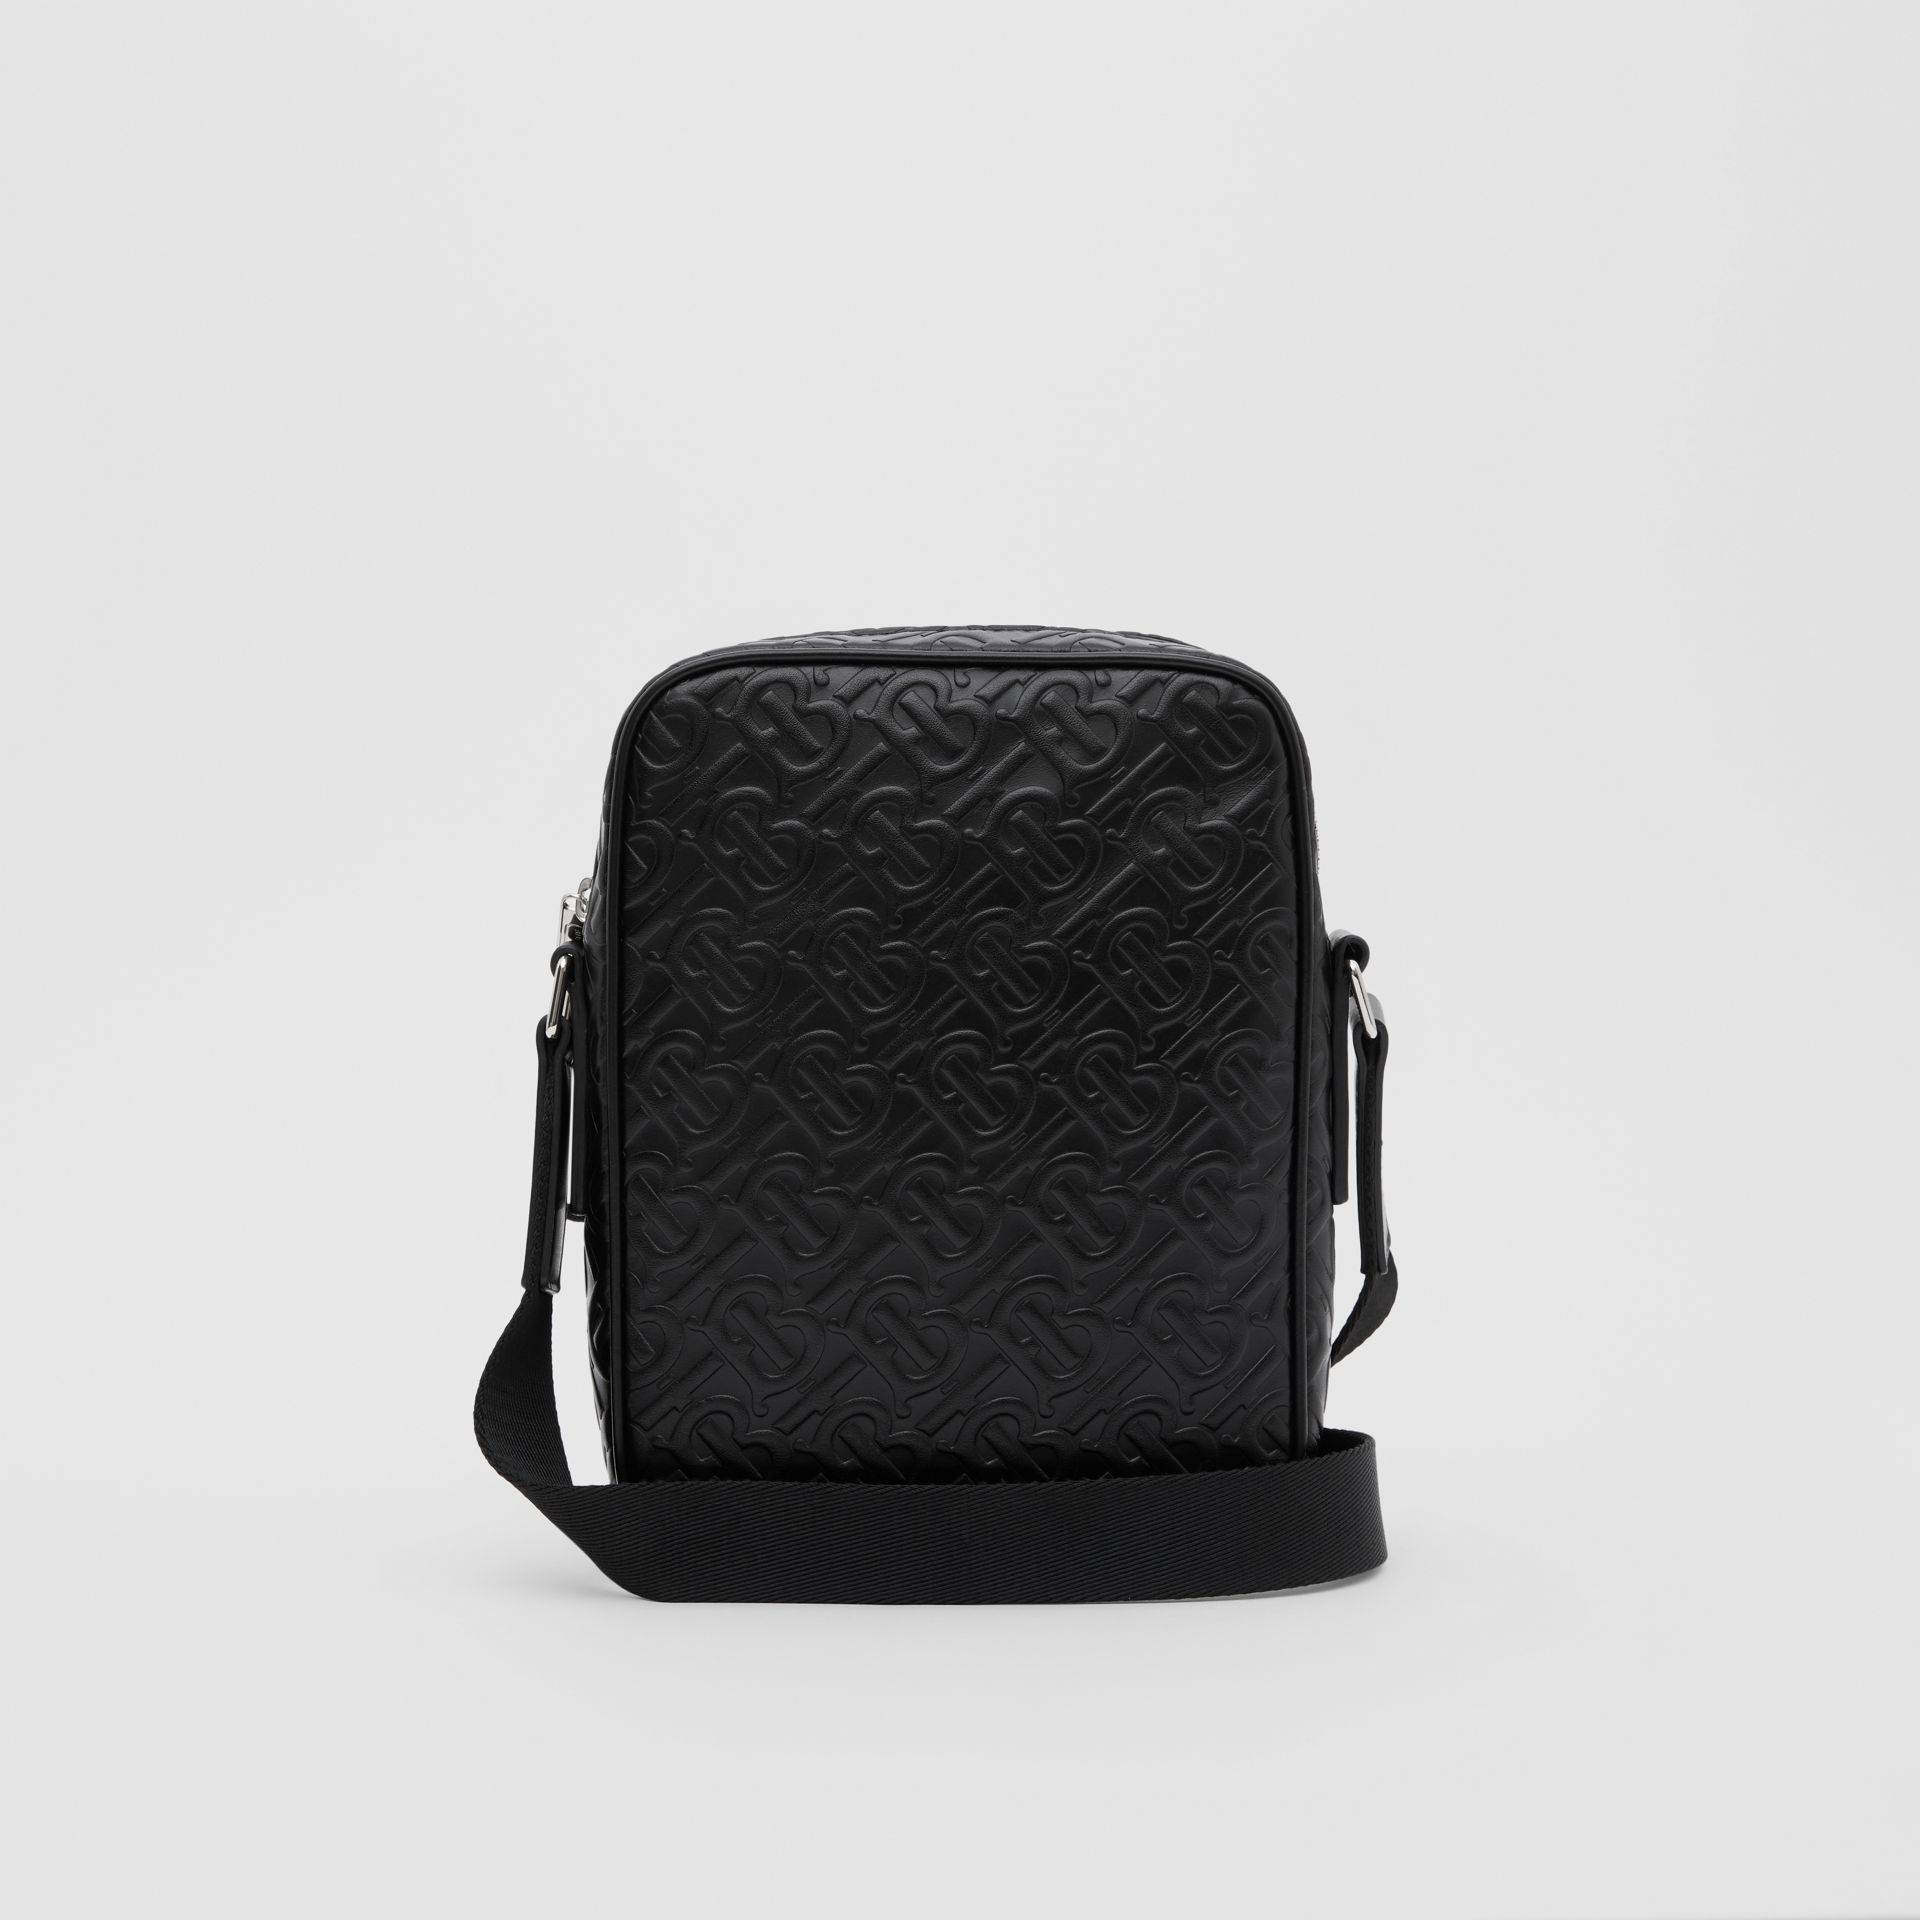 Monogram Leather Crossbody Bag in Black - Men | Burberry Canada - gallery image 9